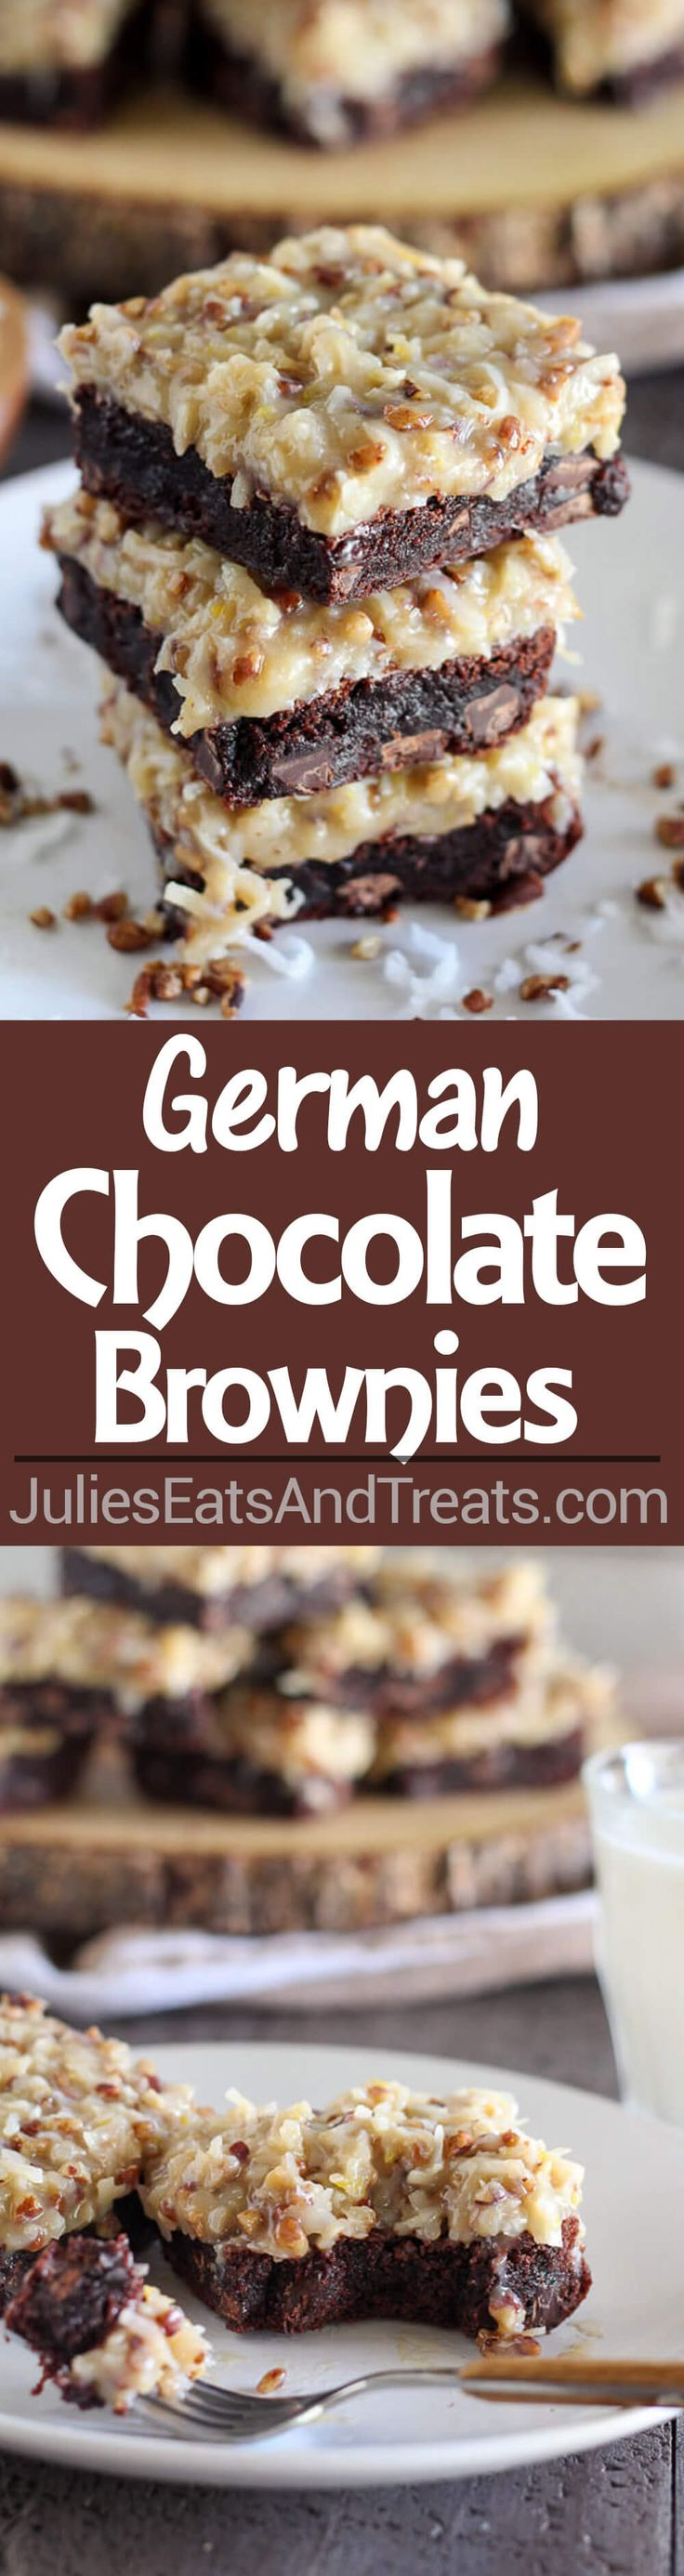 German Chocolate Brownies | Julie's Eats & Treats | Rich chocolaty brownies topped with a gooey homemade coconut pecan frosting. Make the brownies from scratch, or use a boxed brownie mix as the base of this recipe. You'll love this decadent dessert!